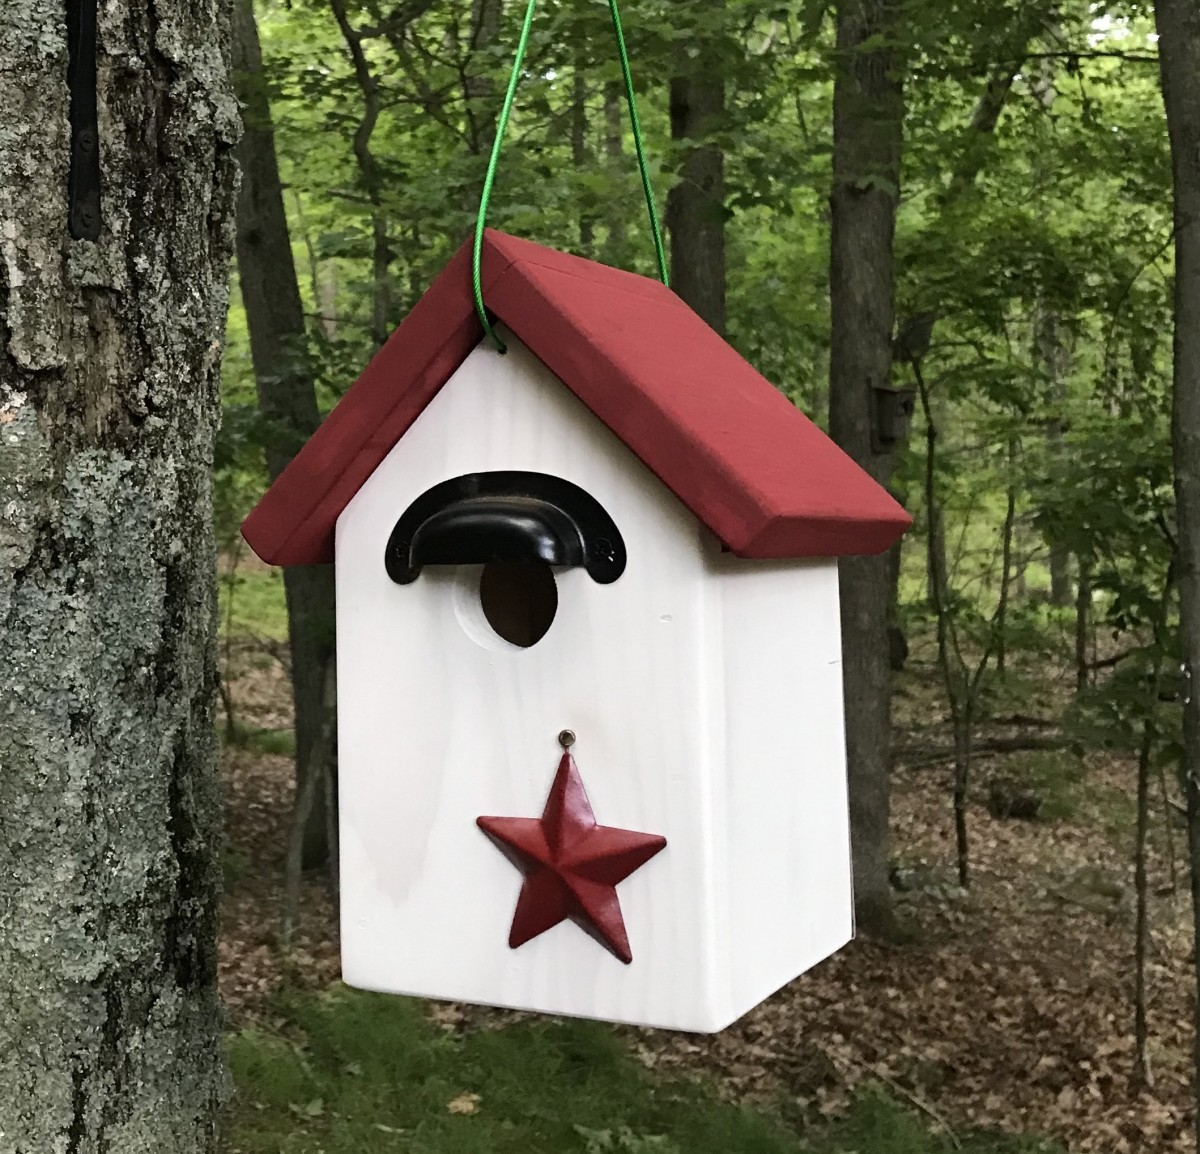 Front view of the birdhouse.